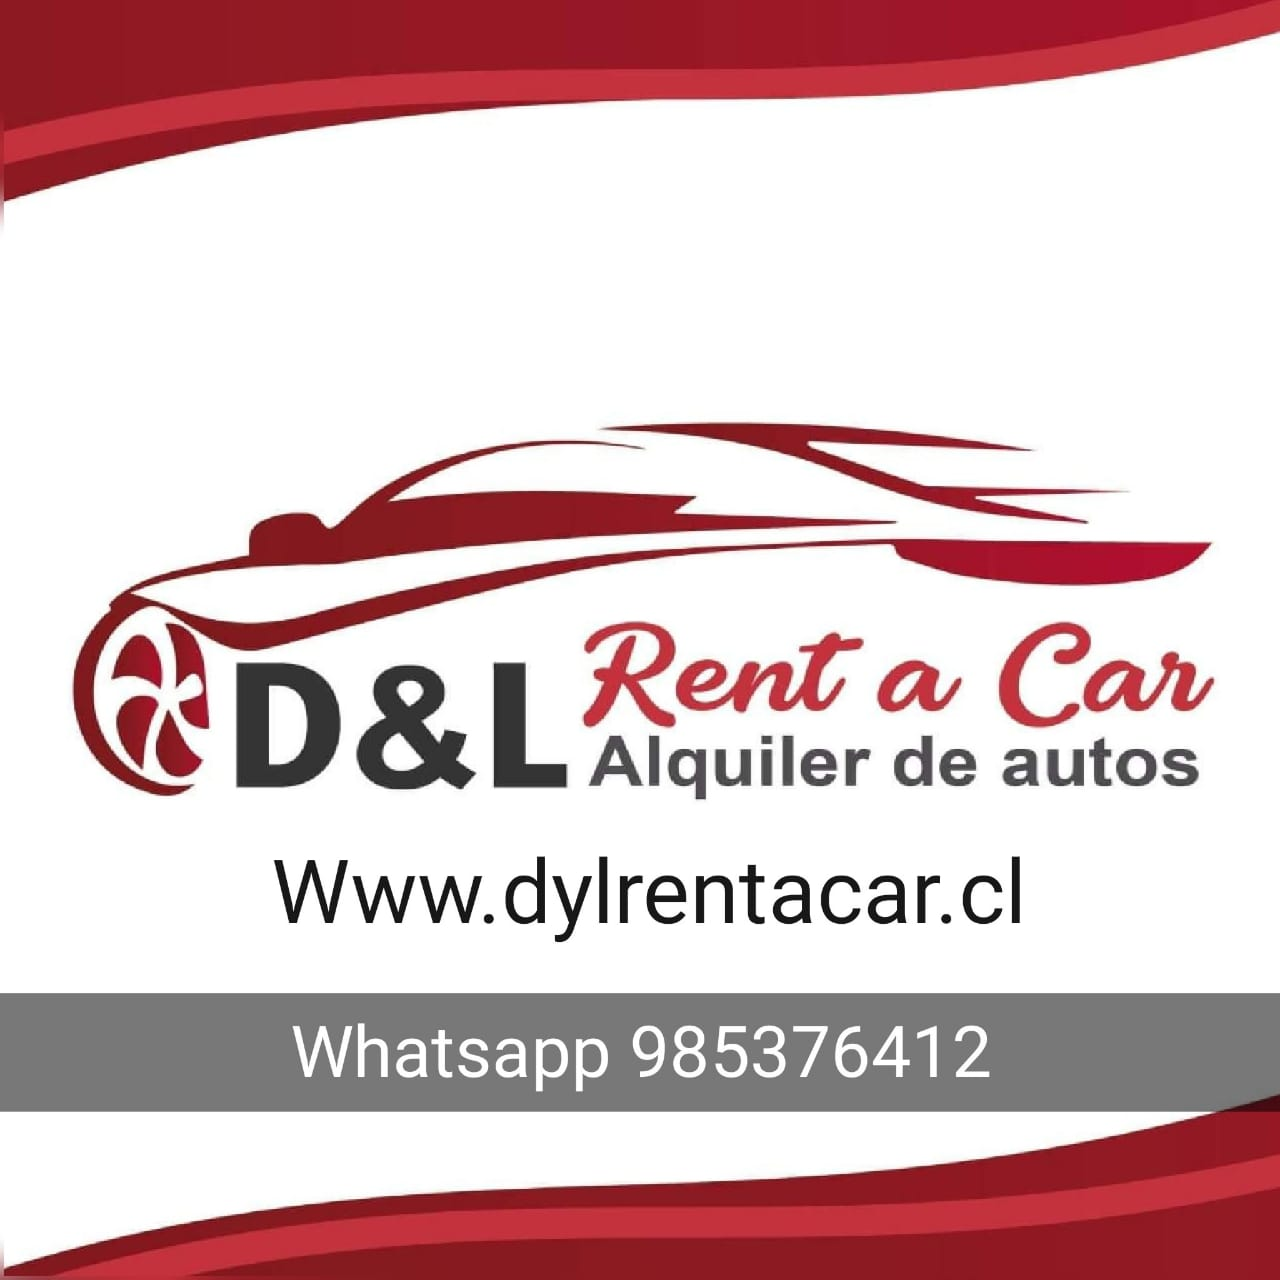 D&L Rent a Car Puerto Montt